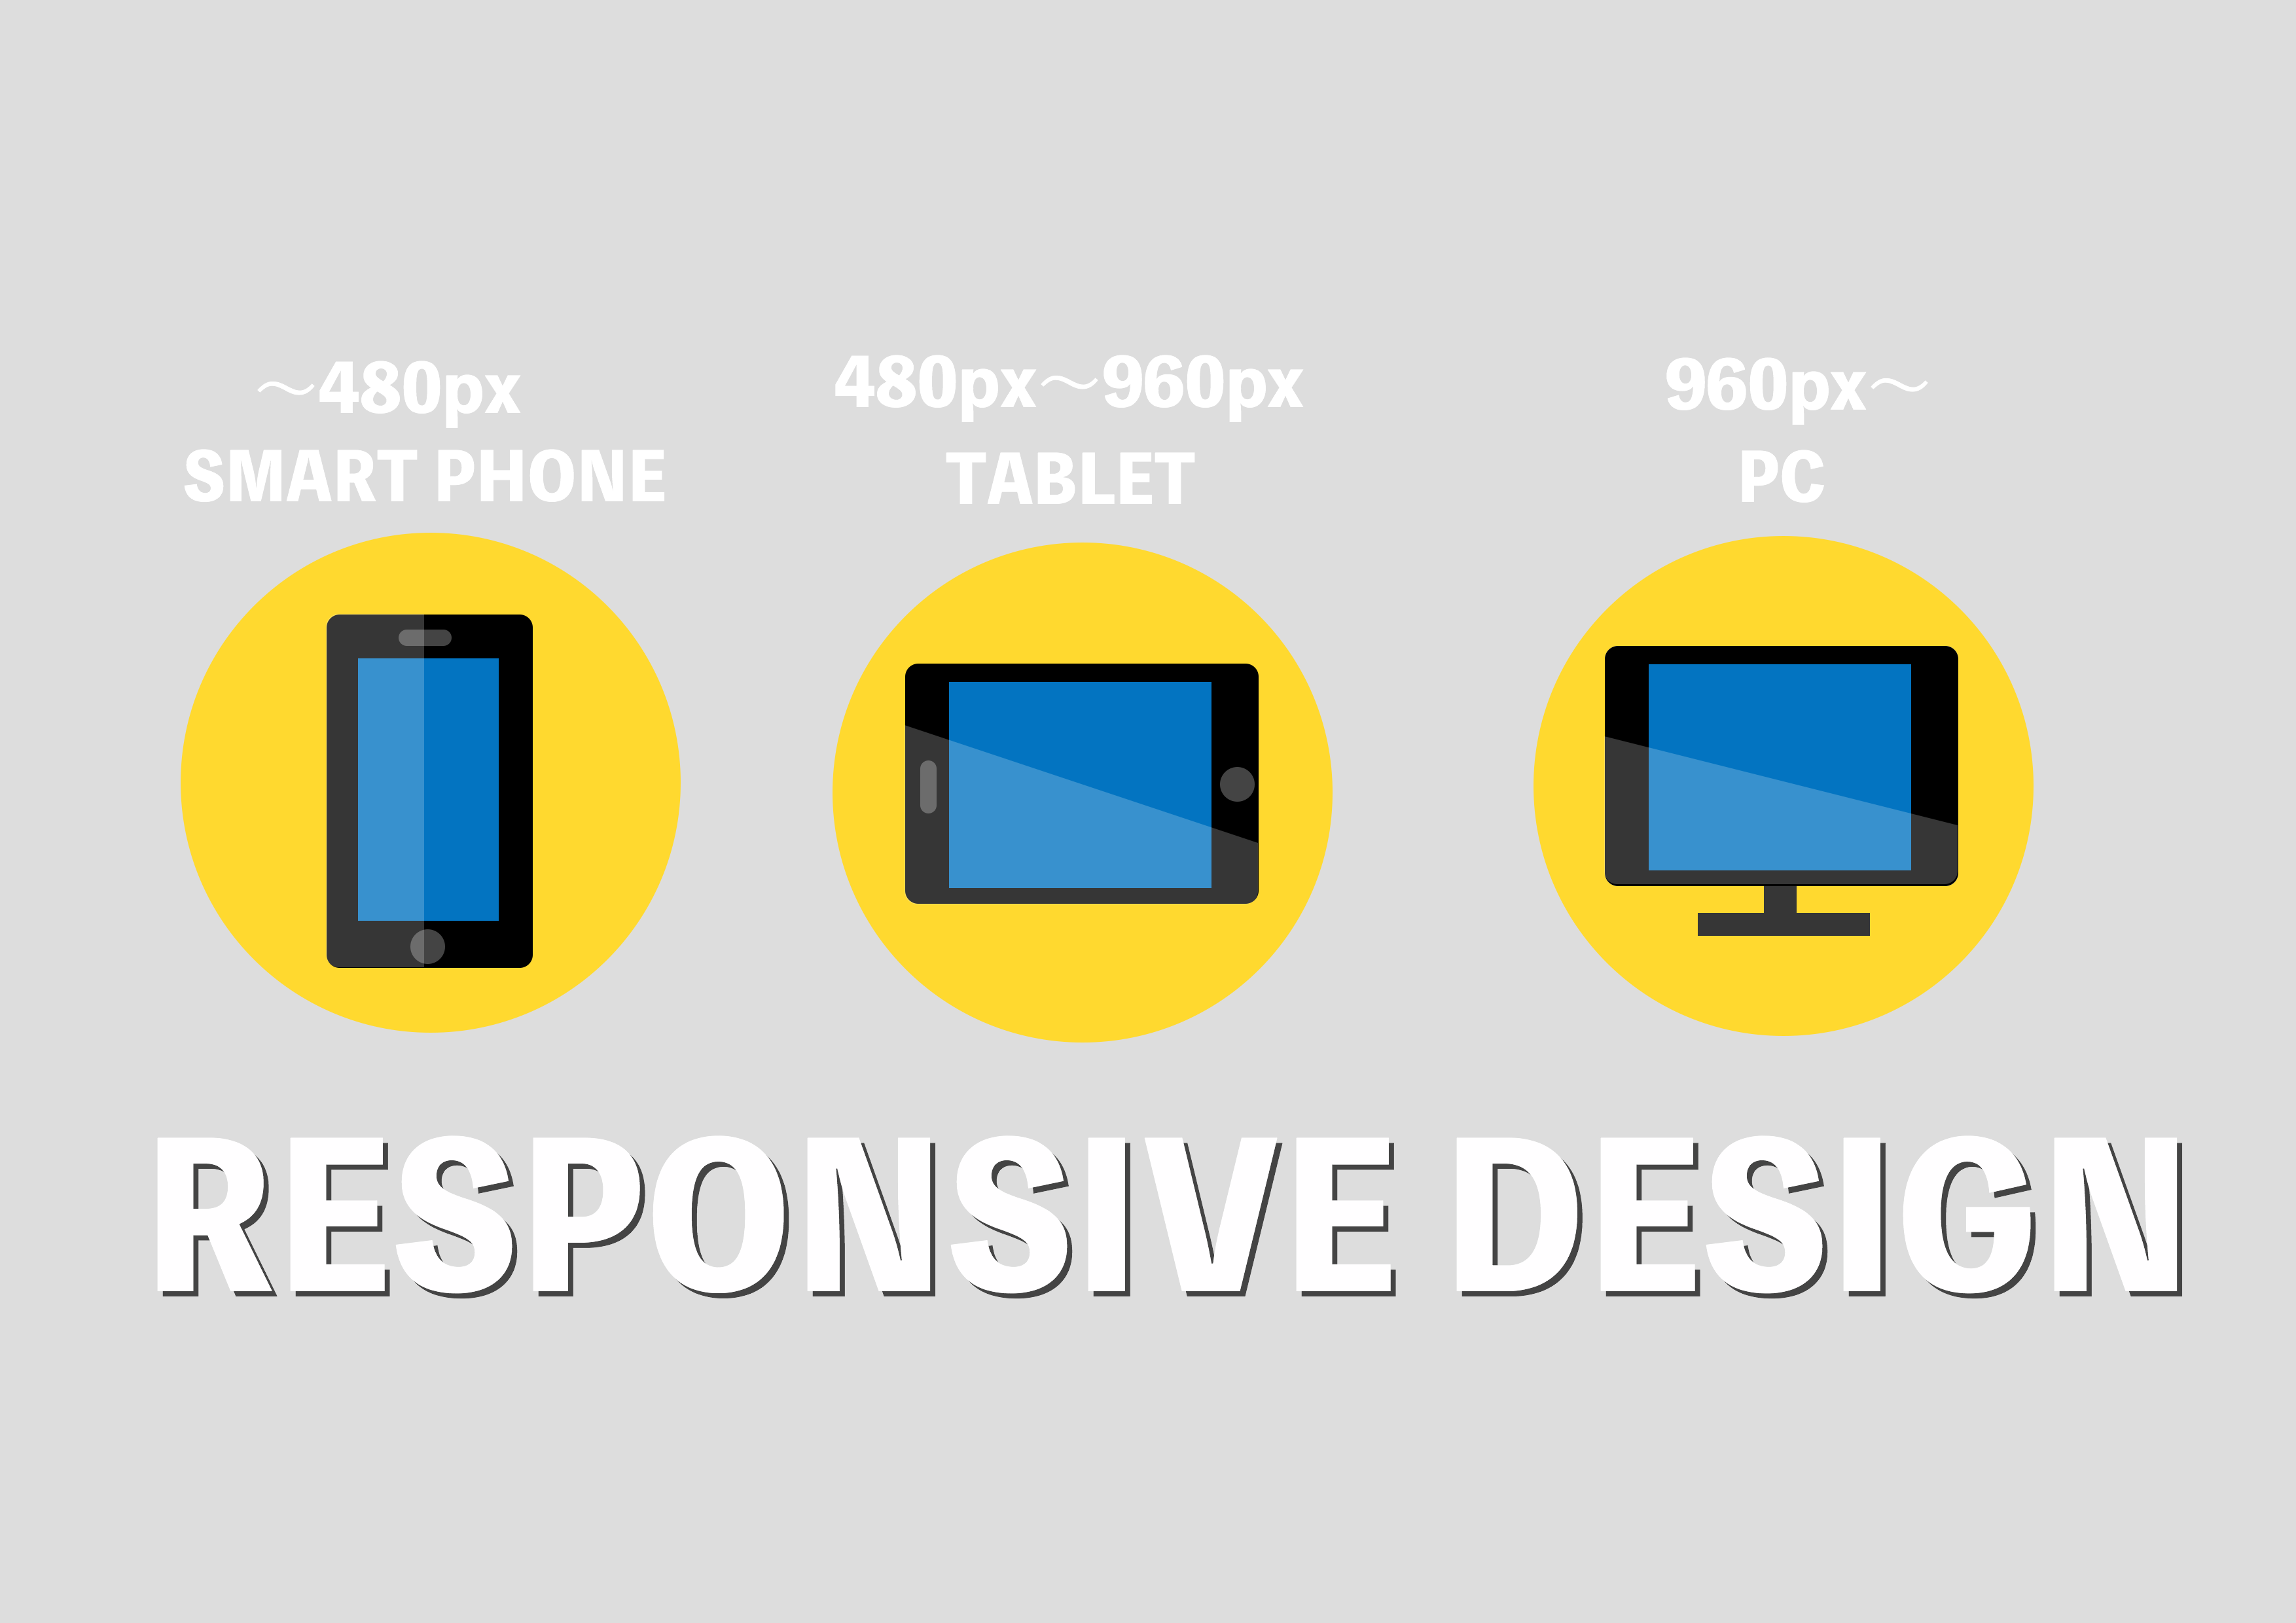 responsivedesign.png